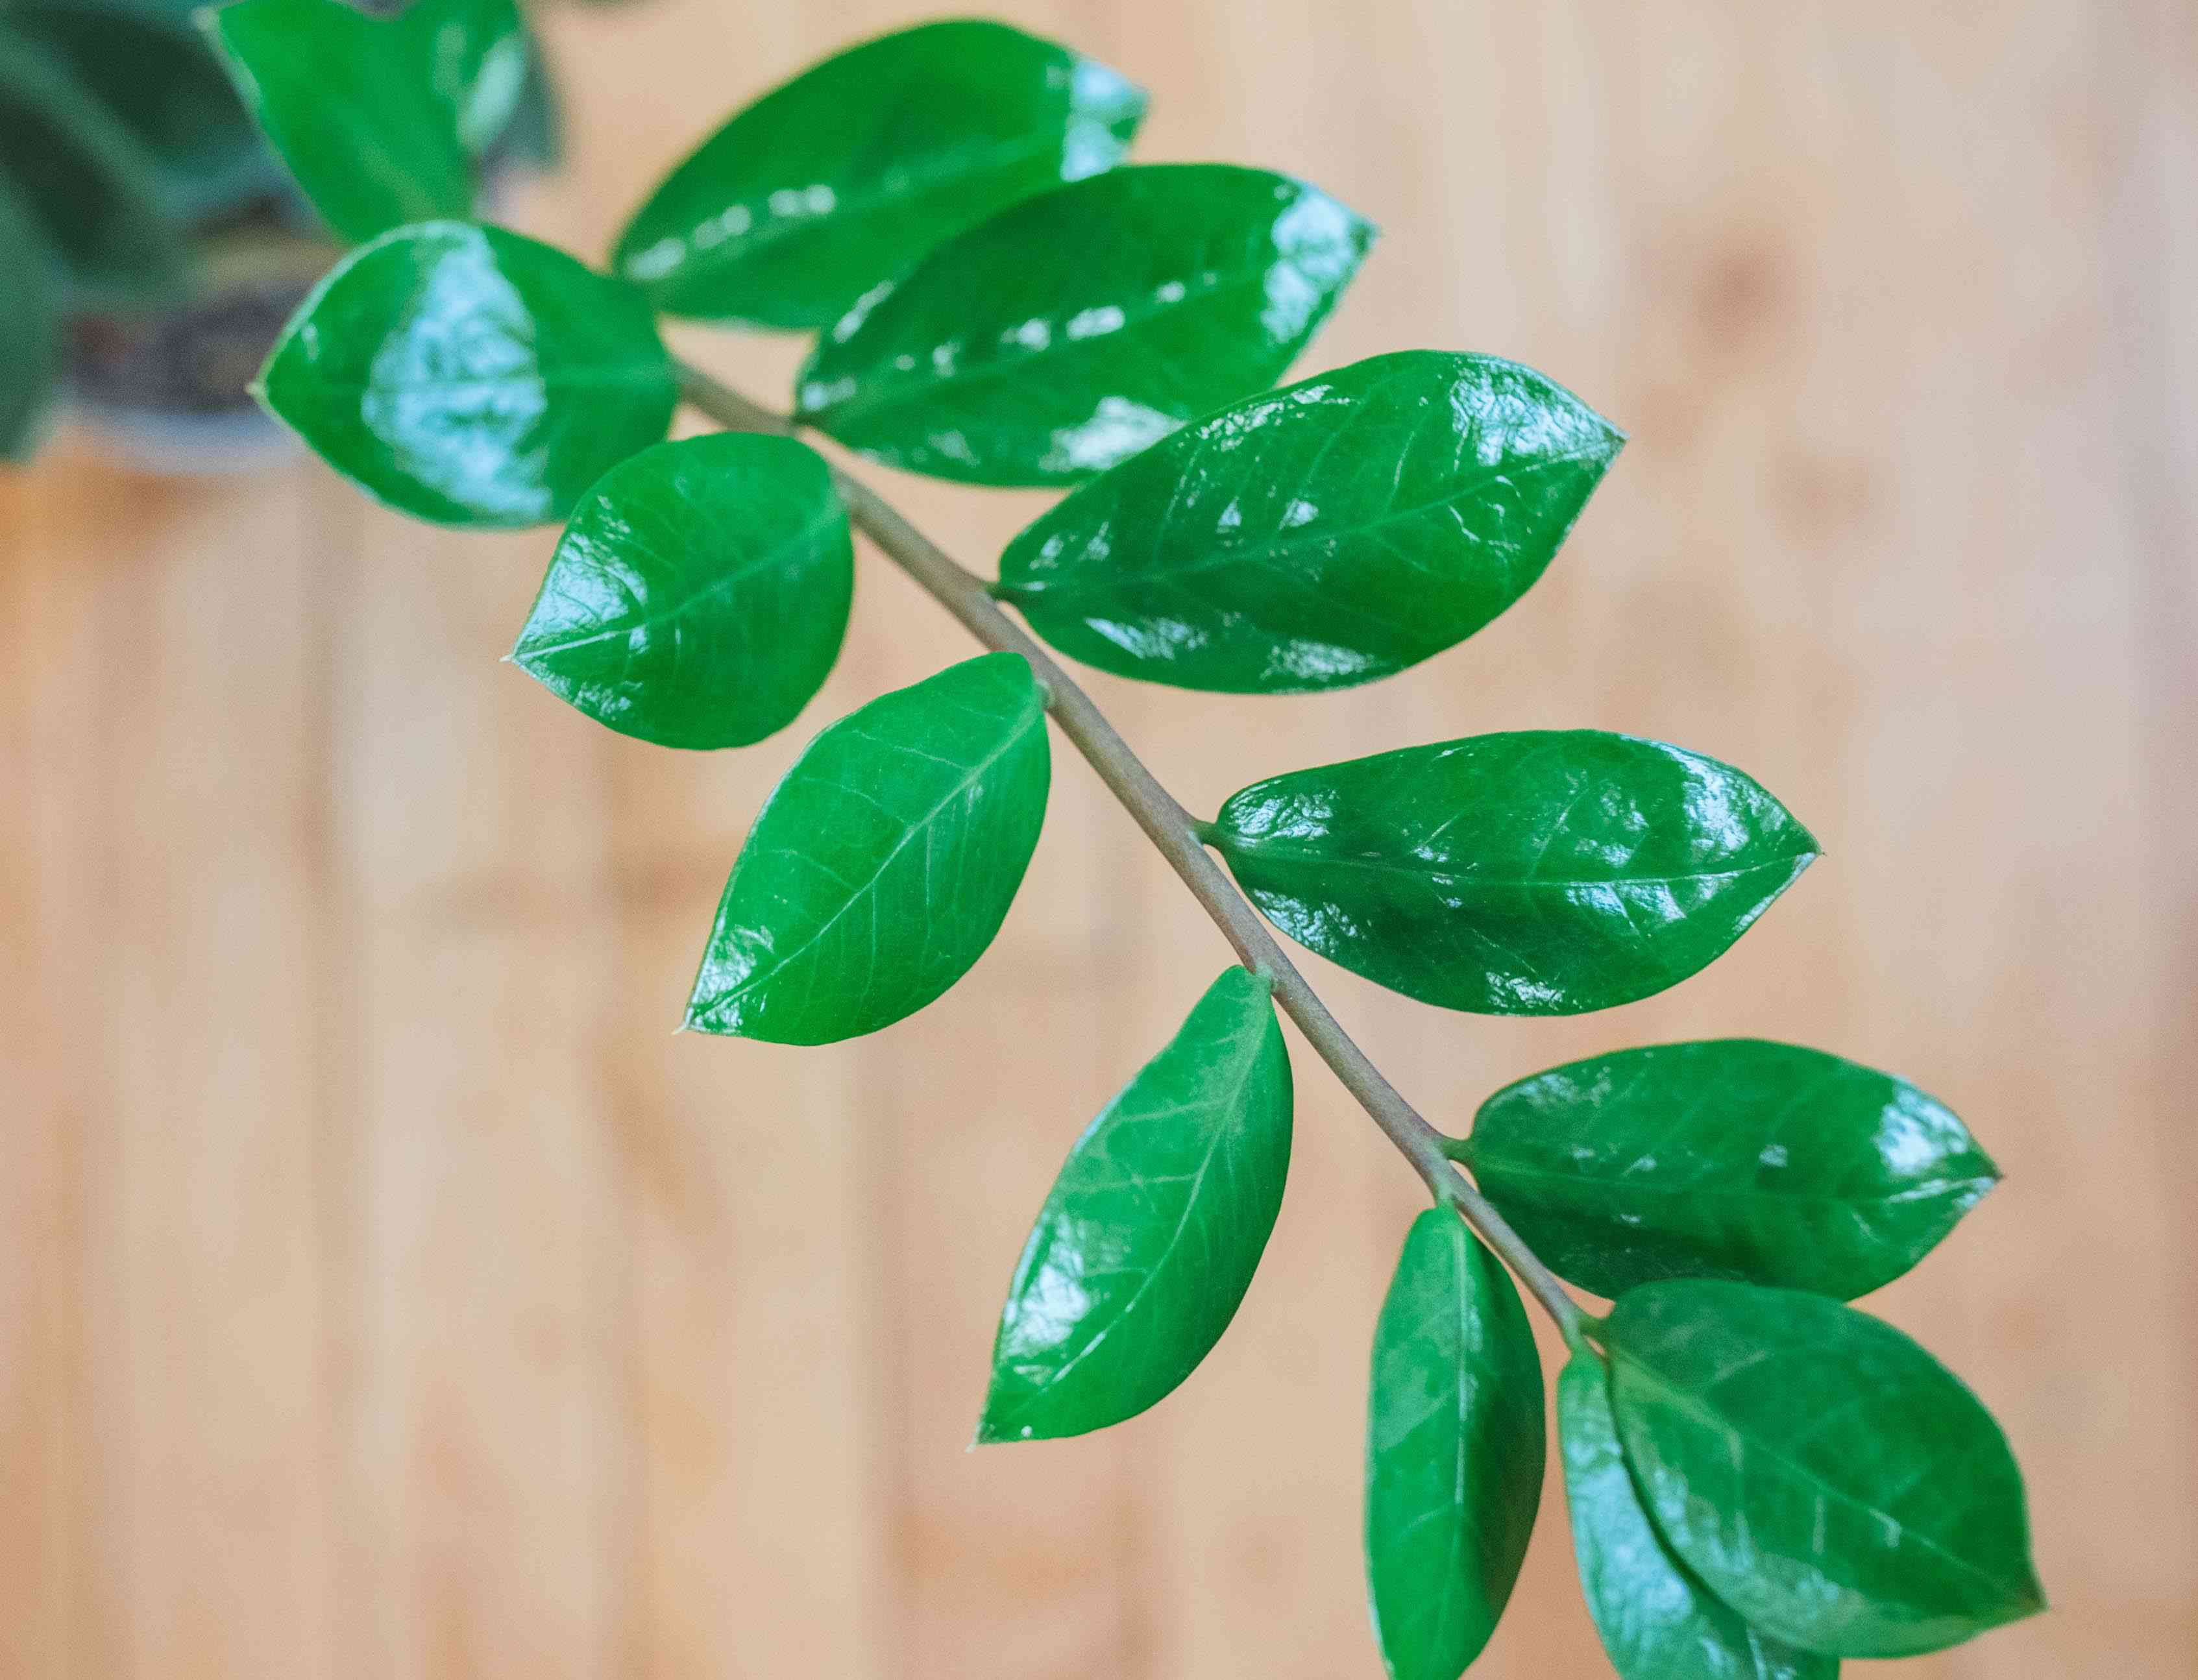 shot of single zz plant stem with shiny bright green leaves against wood floor